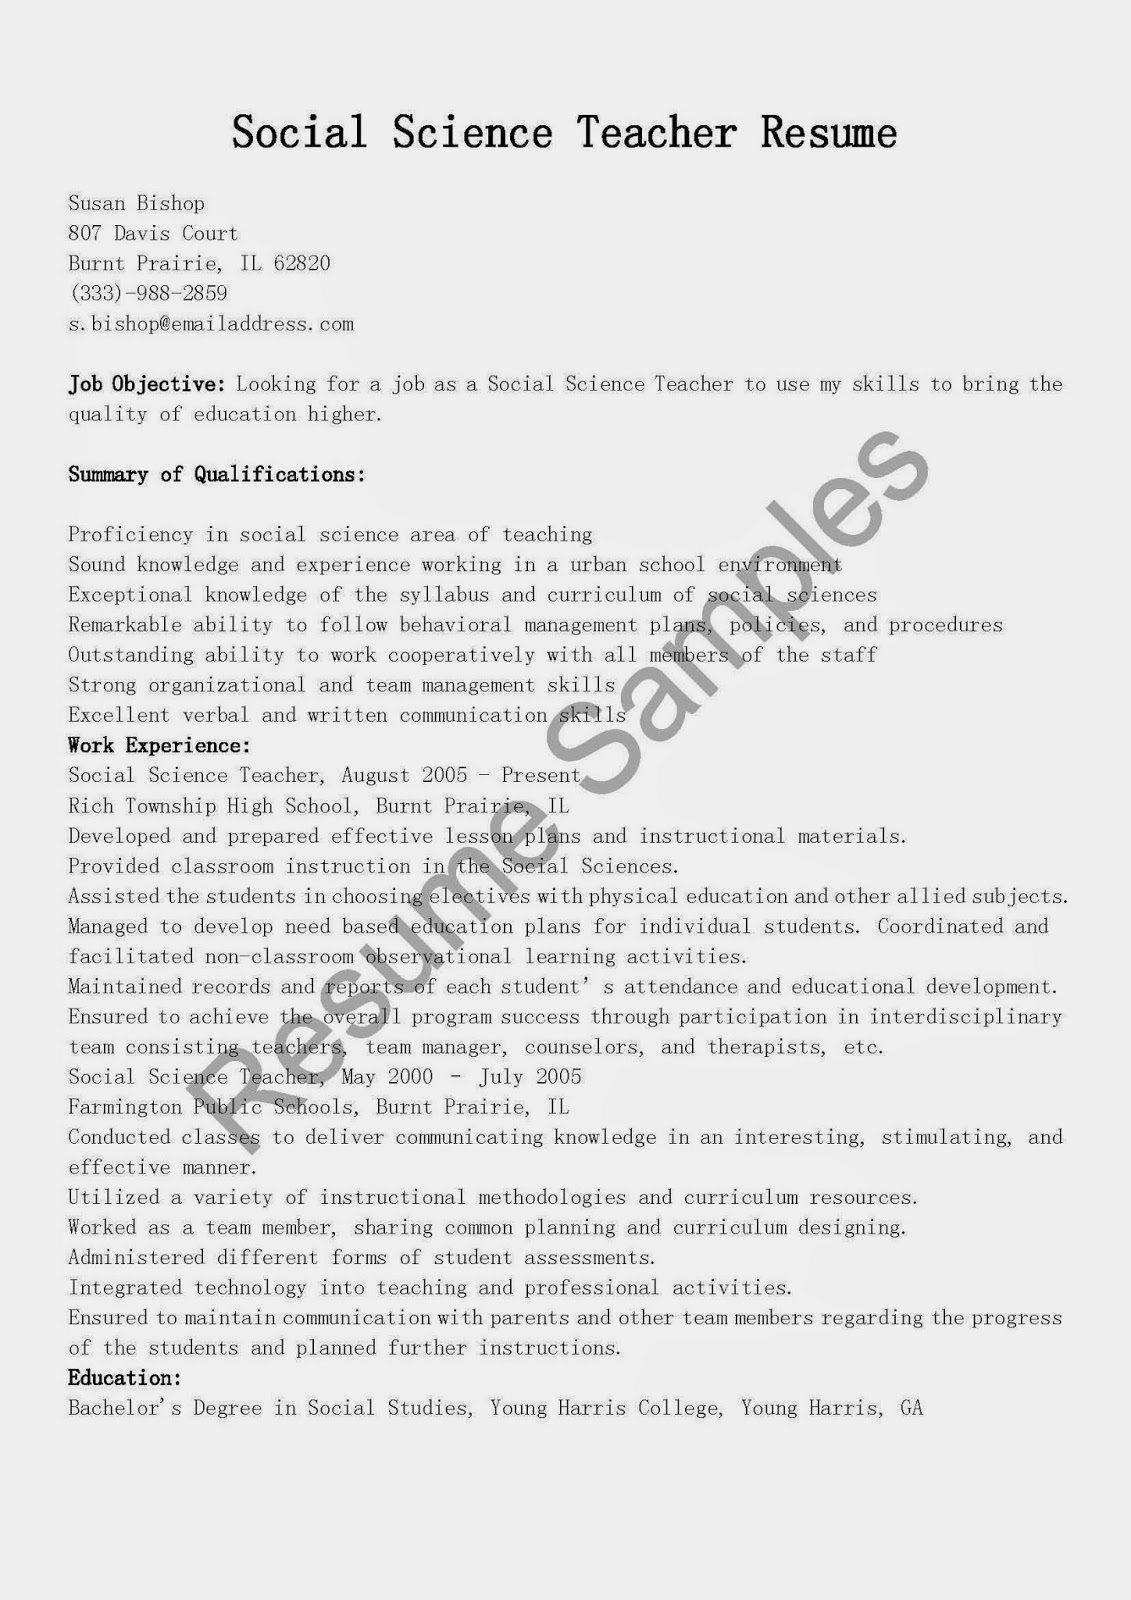 resume samples  social science teacher resume sample